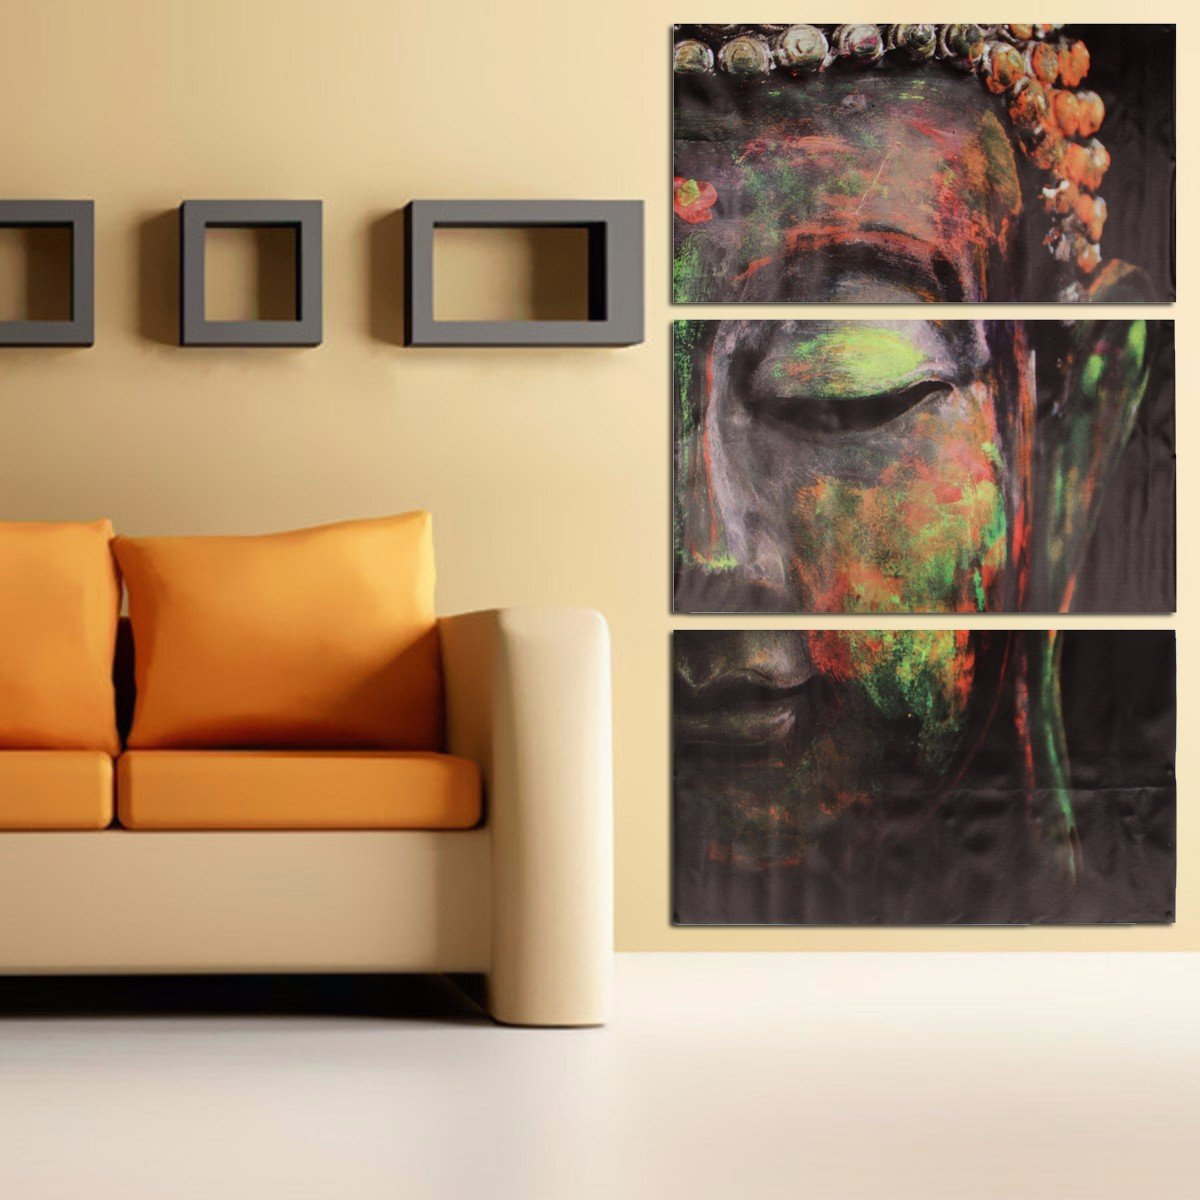 Attrayant 40x60cm Buddha Statues Oil Painting Unframed Abstract Art Canvas Wall Decor